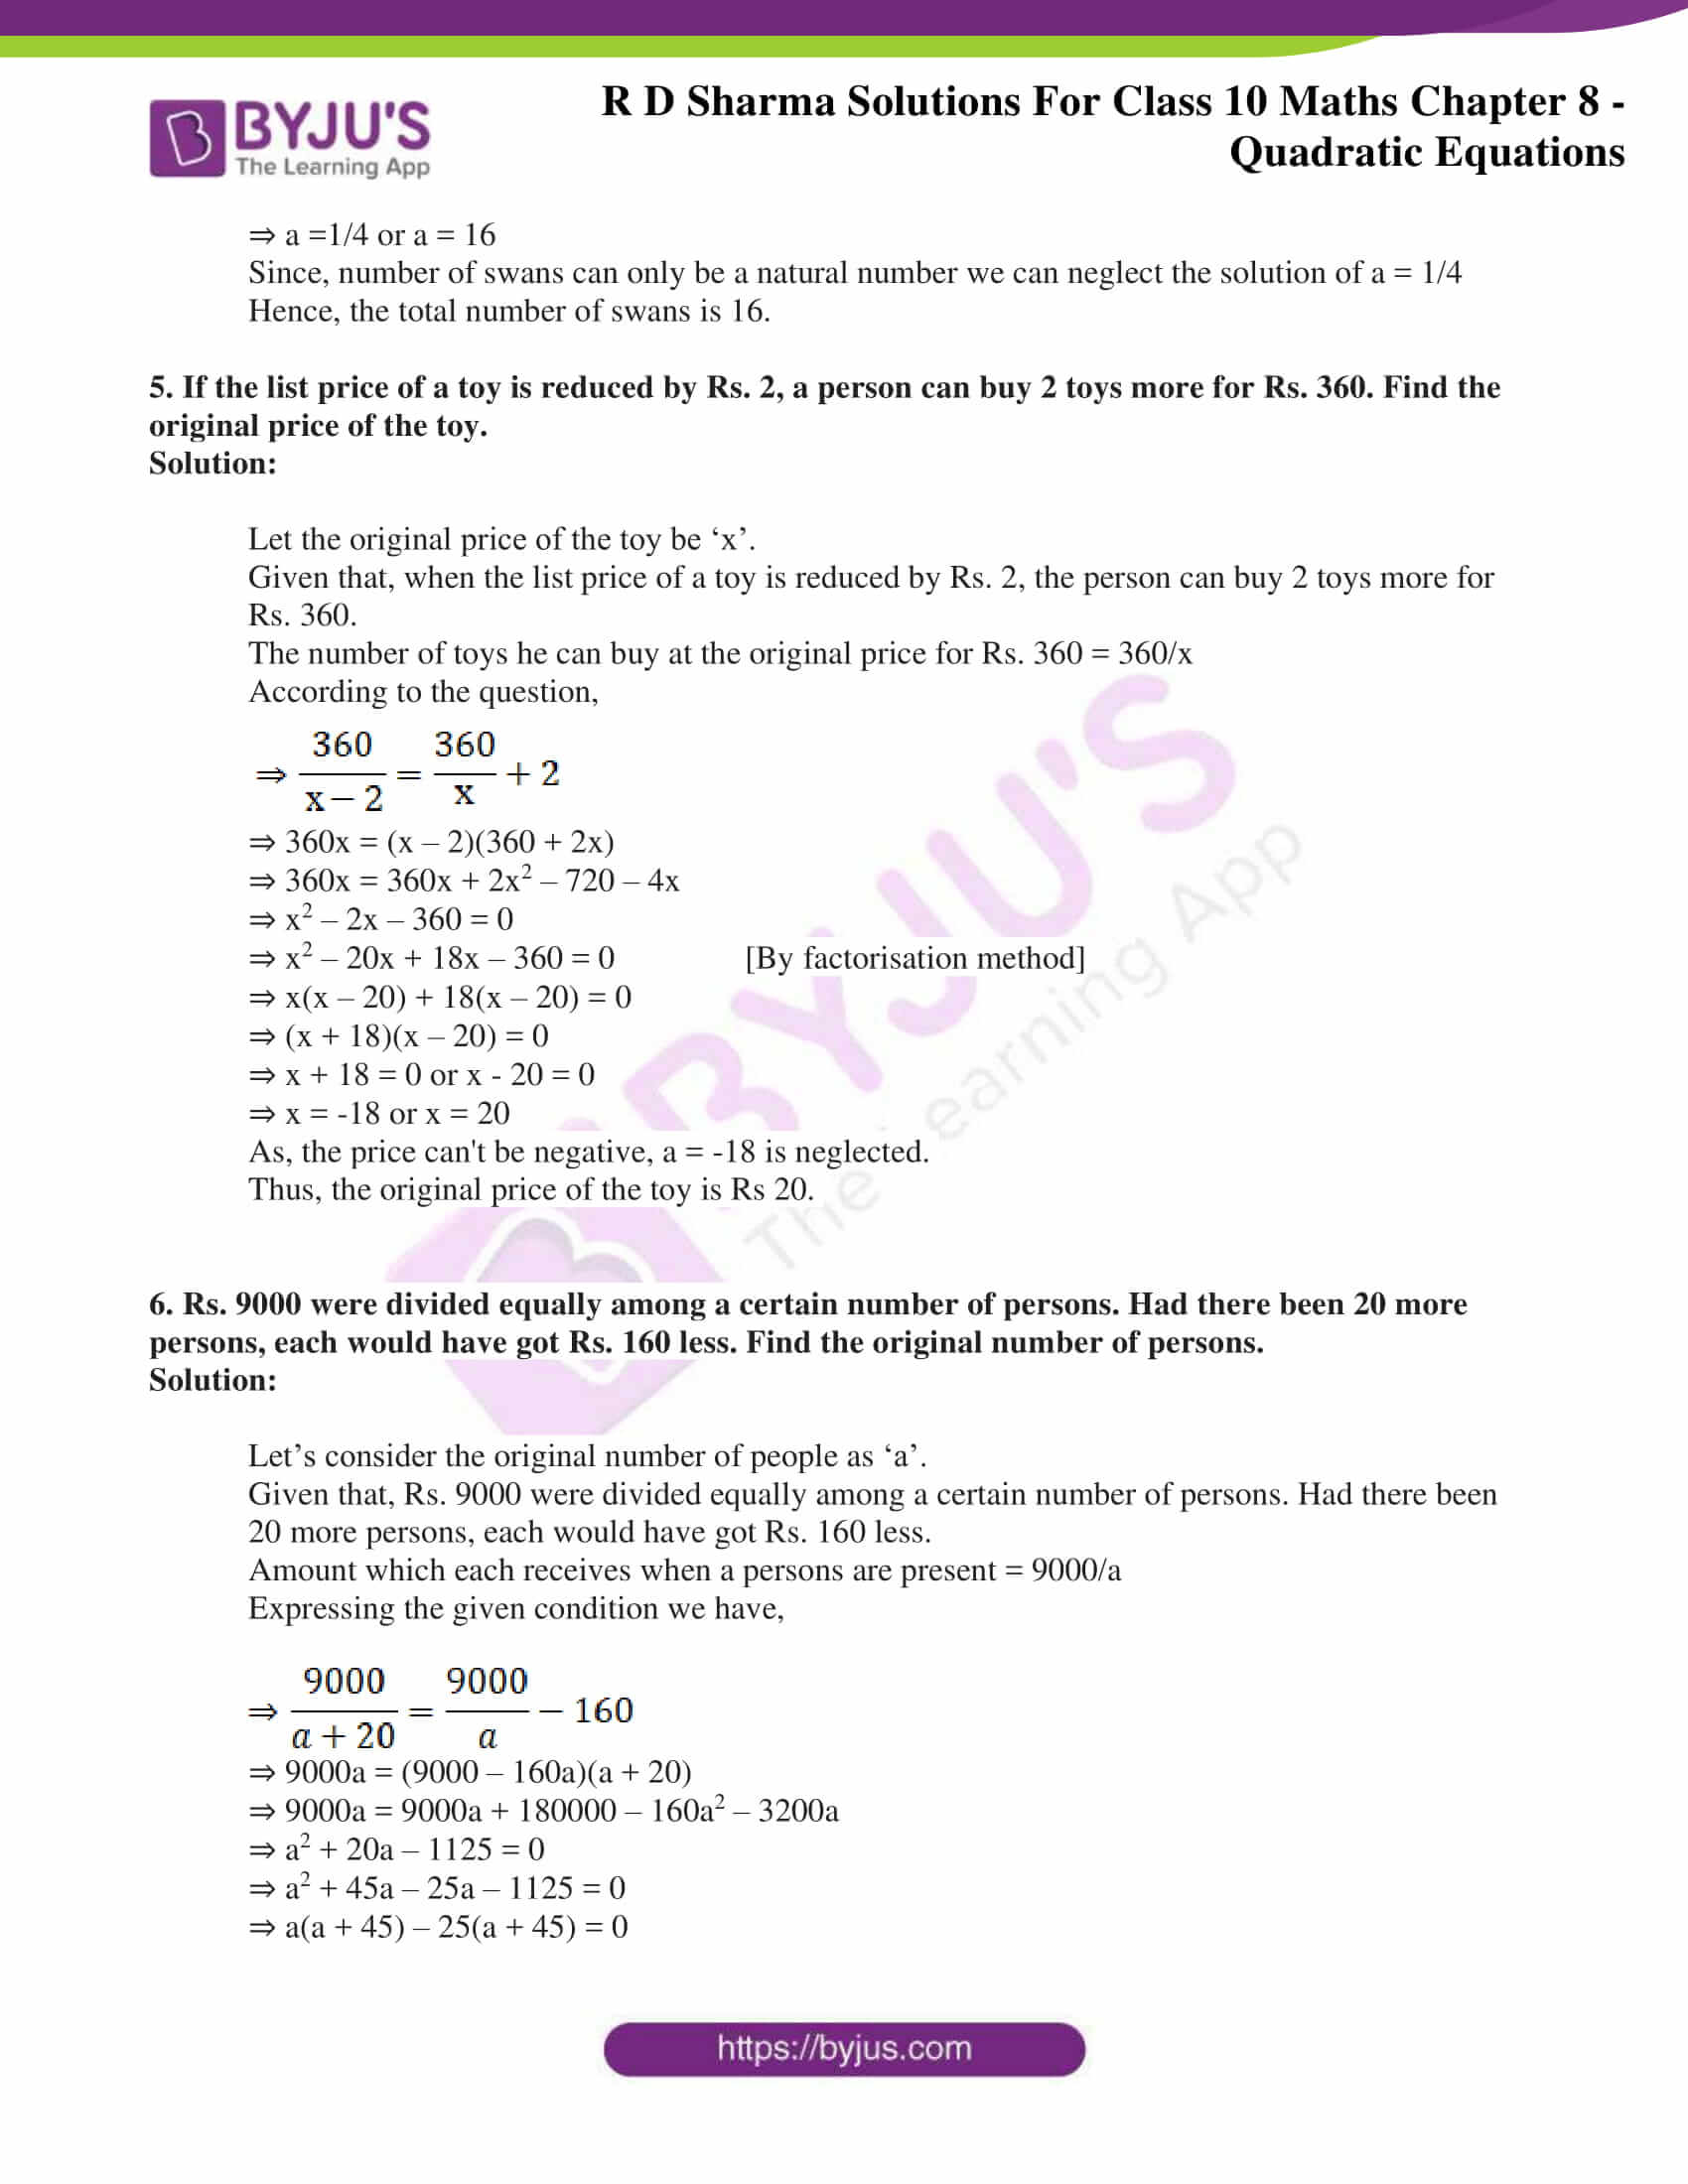 RD Sharma Solutions for Class 10 Chapter 8 Quadratic Equations 74